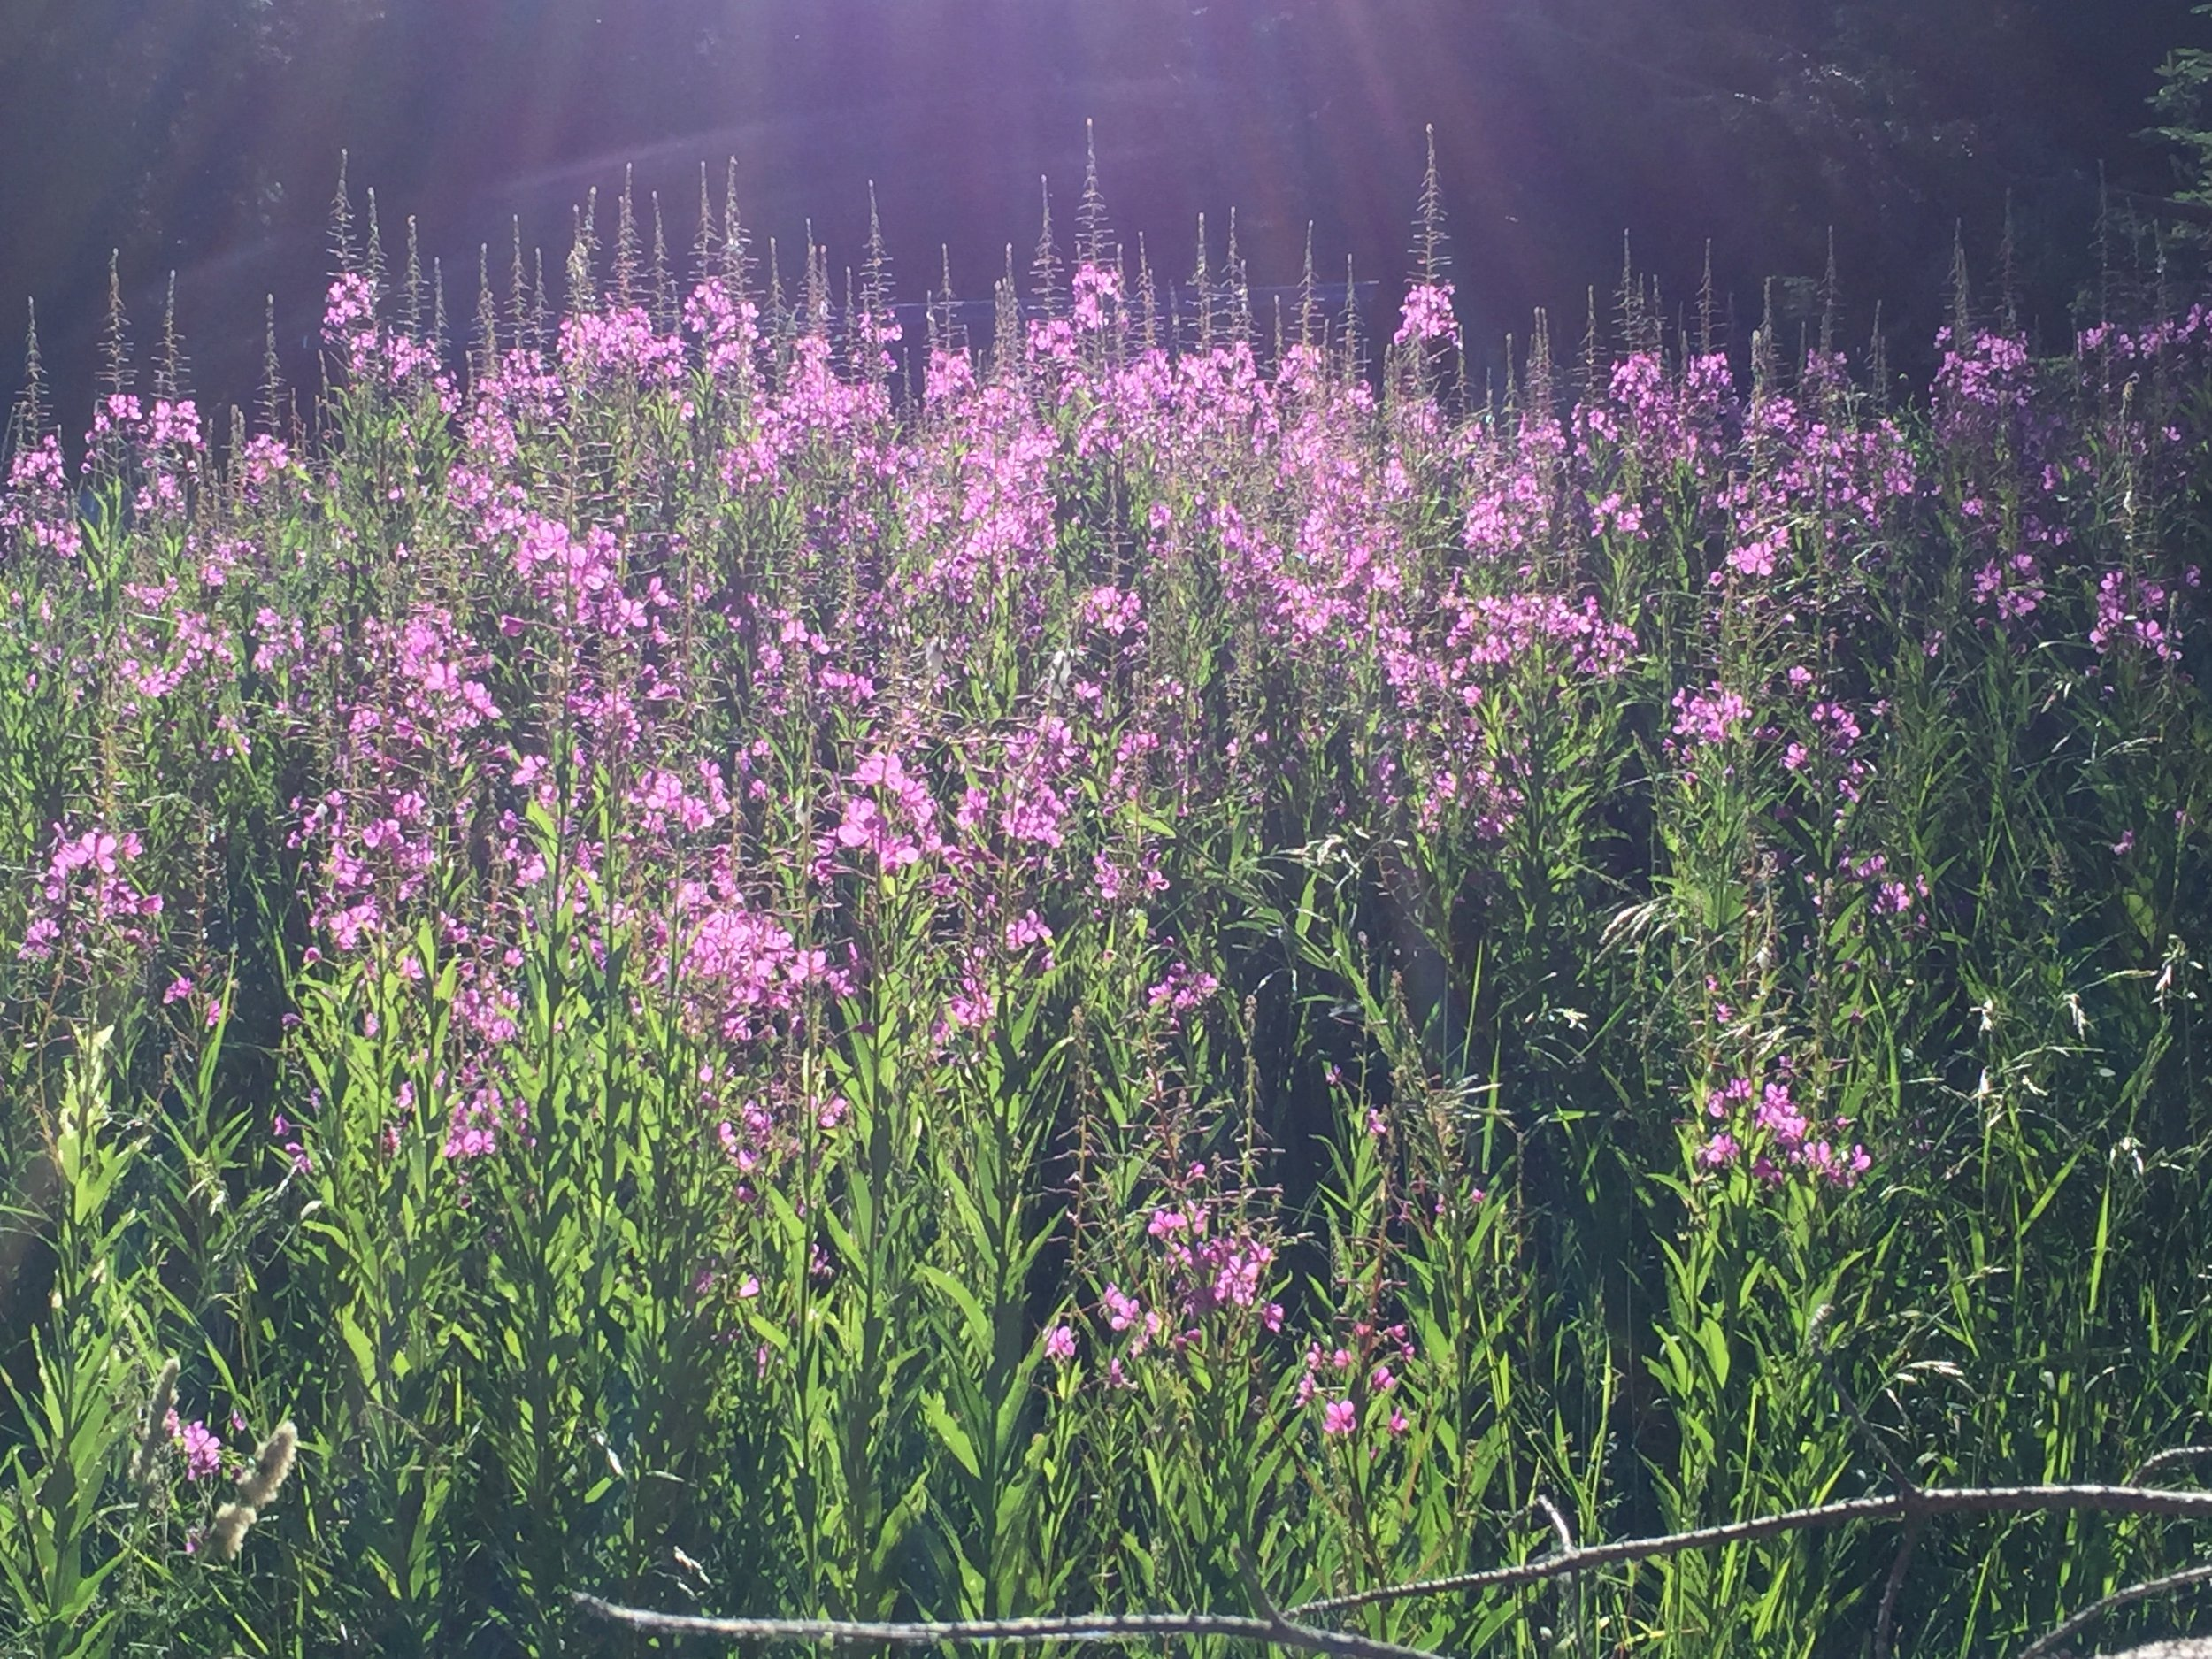 Fireweed was often in forest clearings